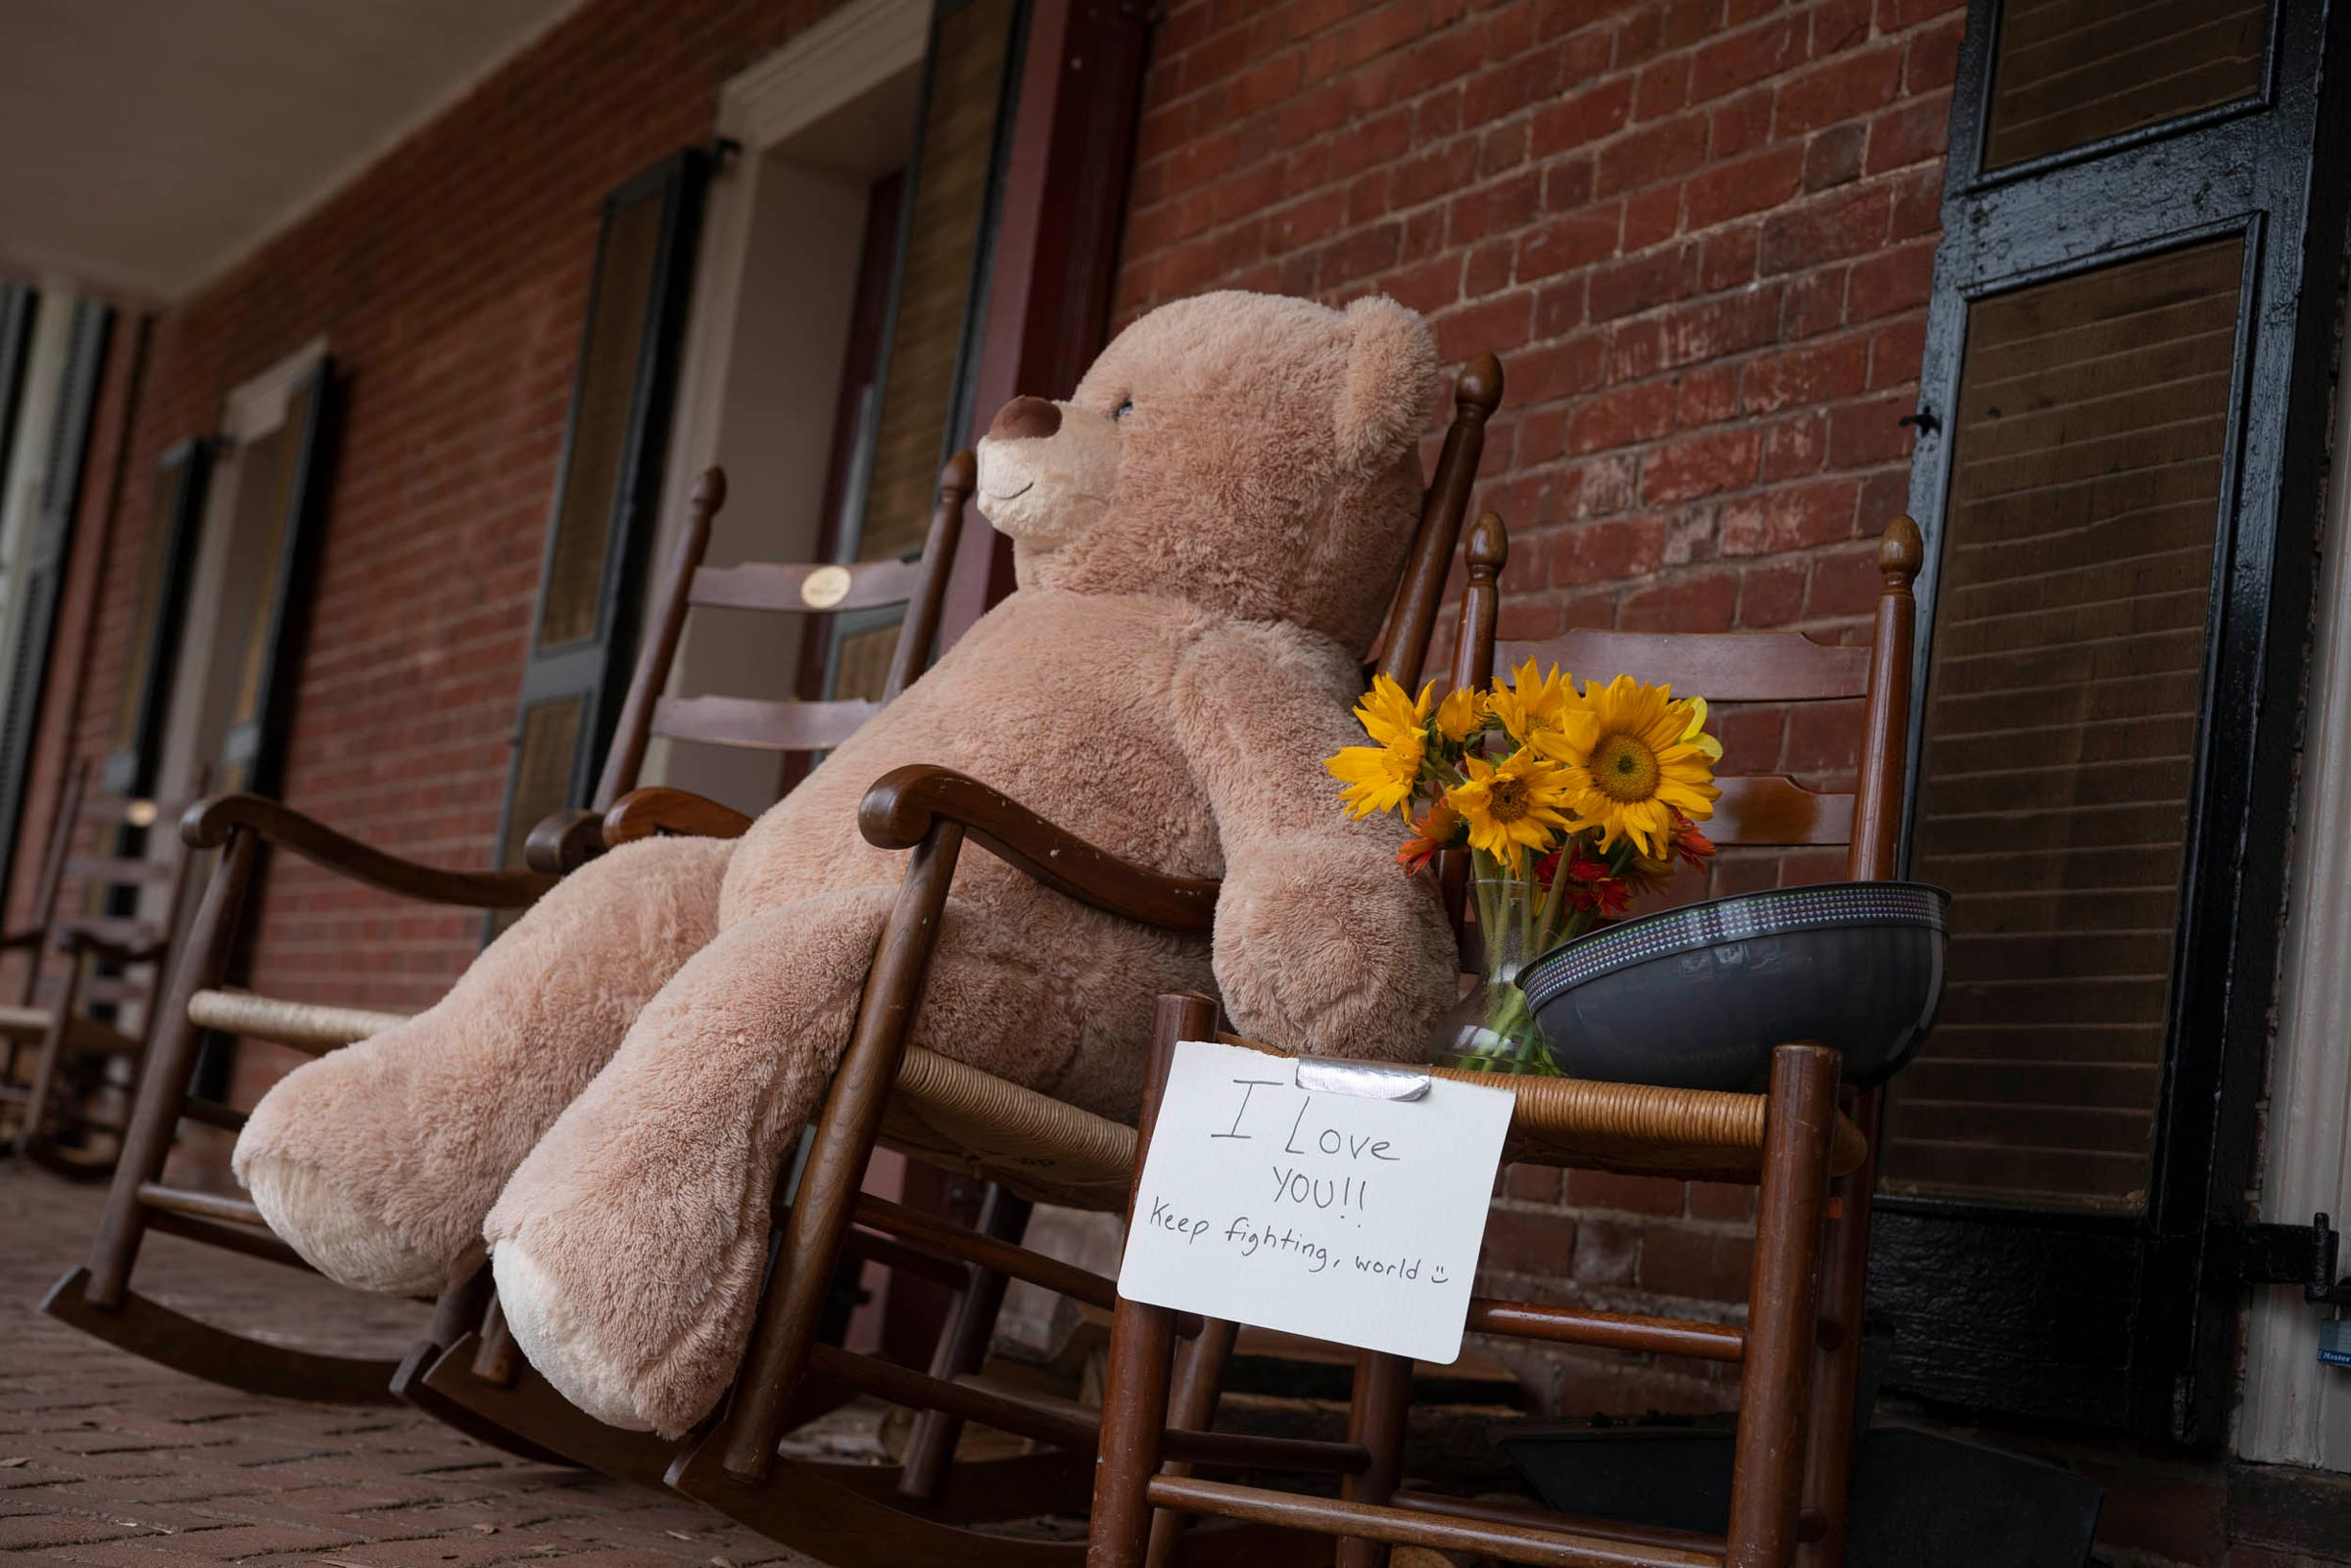 Students left behind notes – and a big bear – on the Lawn. (Photos by Sanjay Suchak, University Communications)